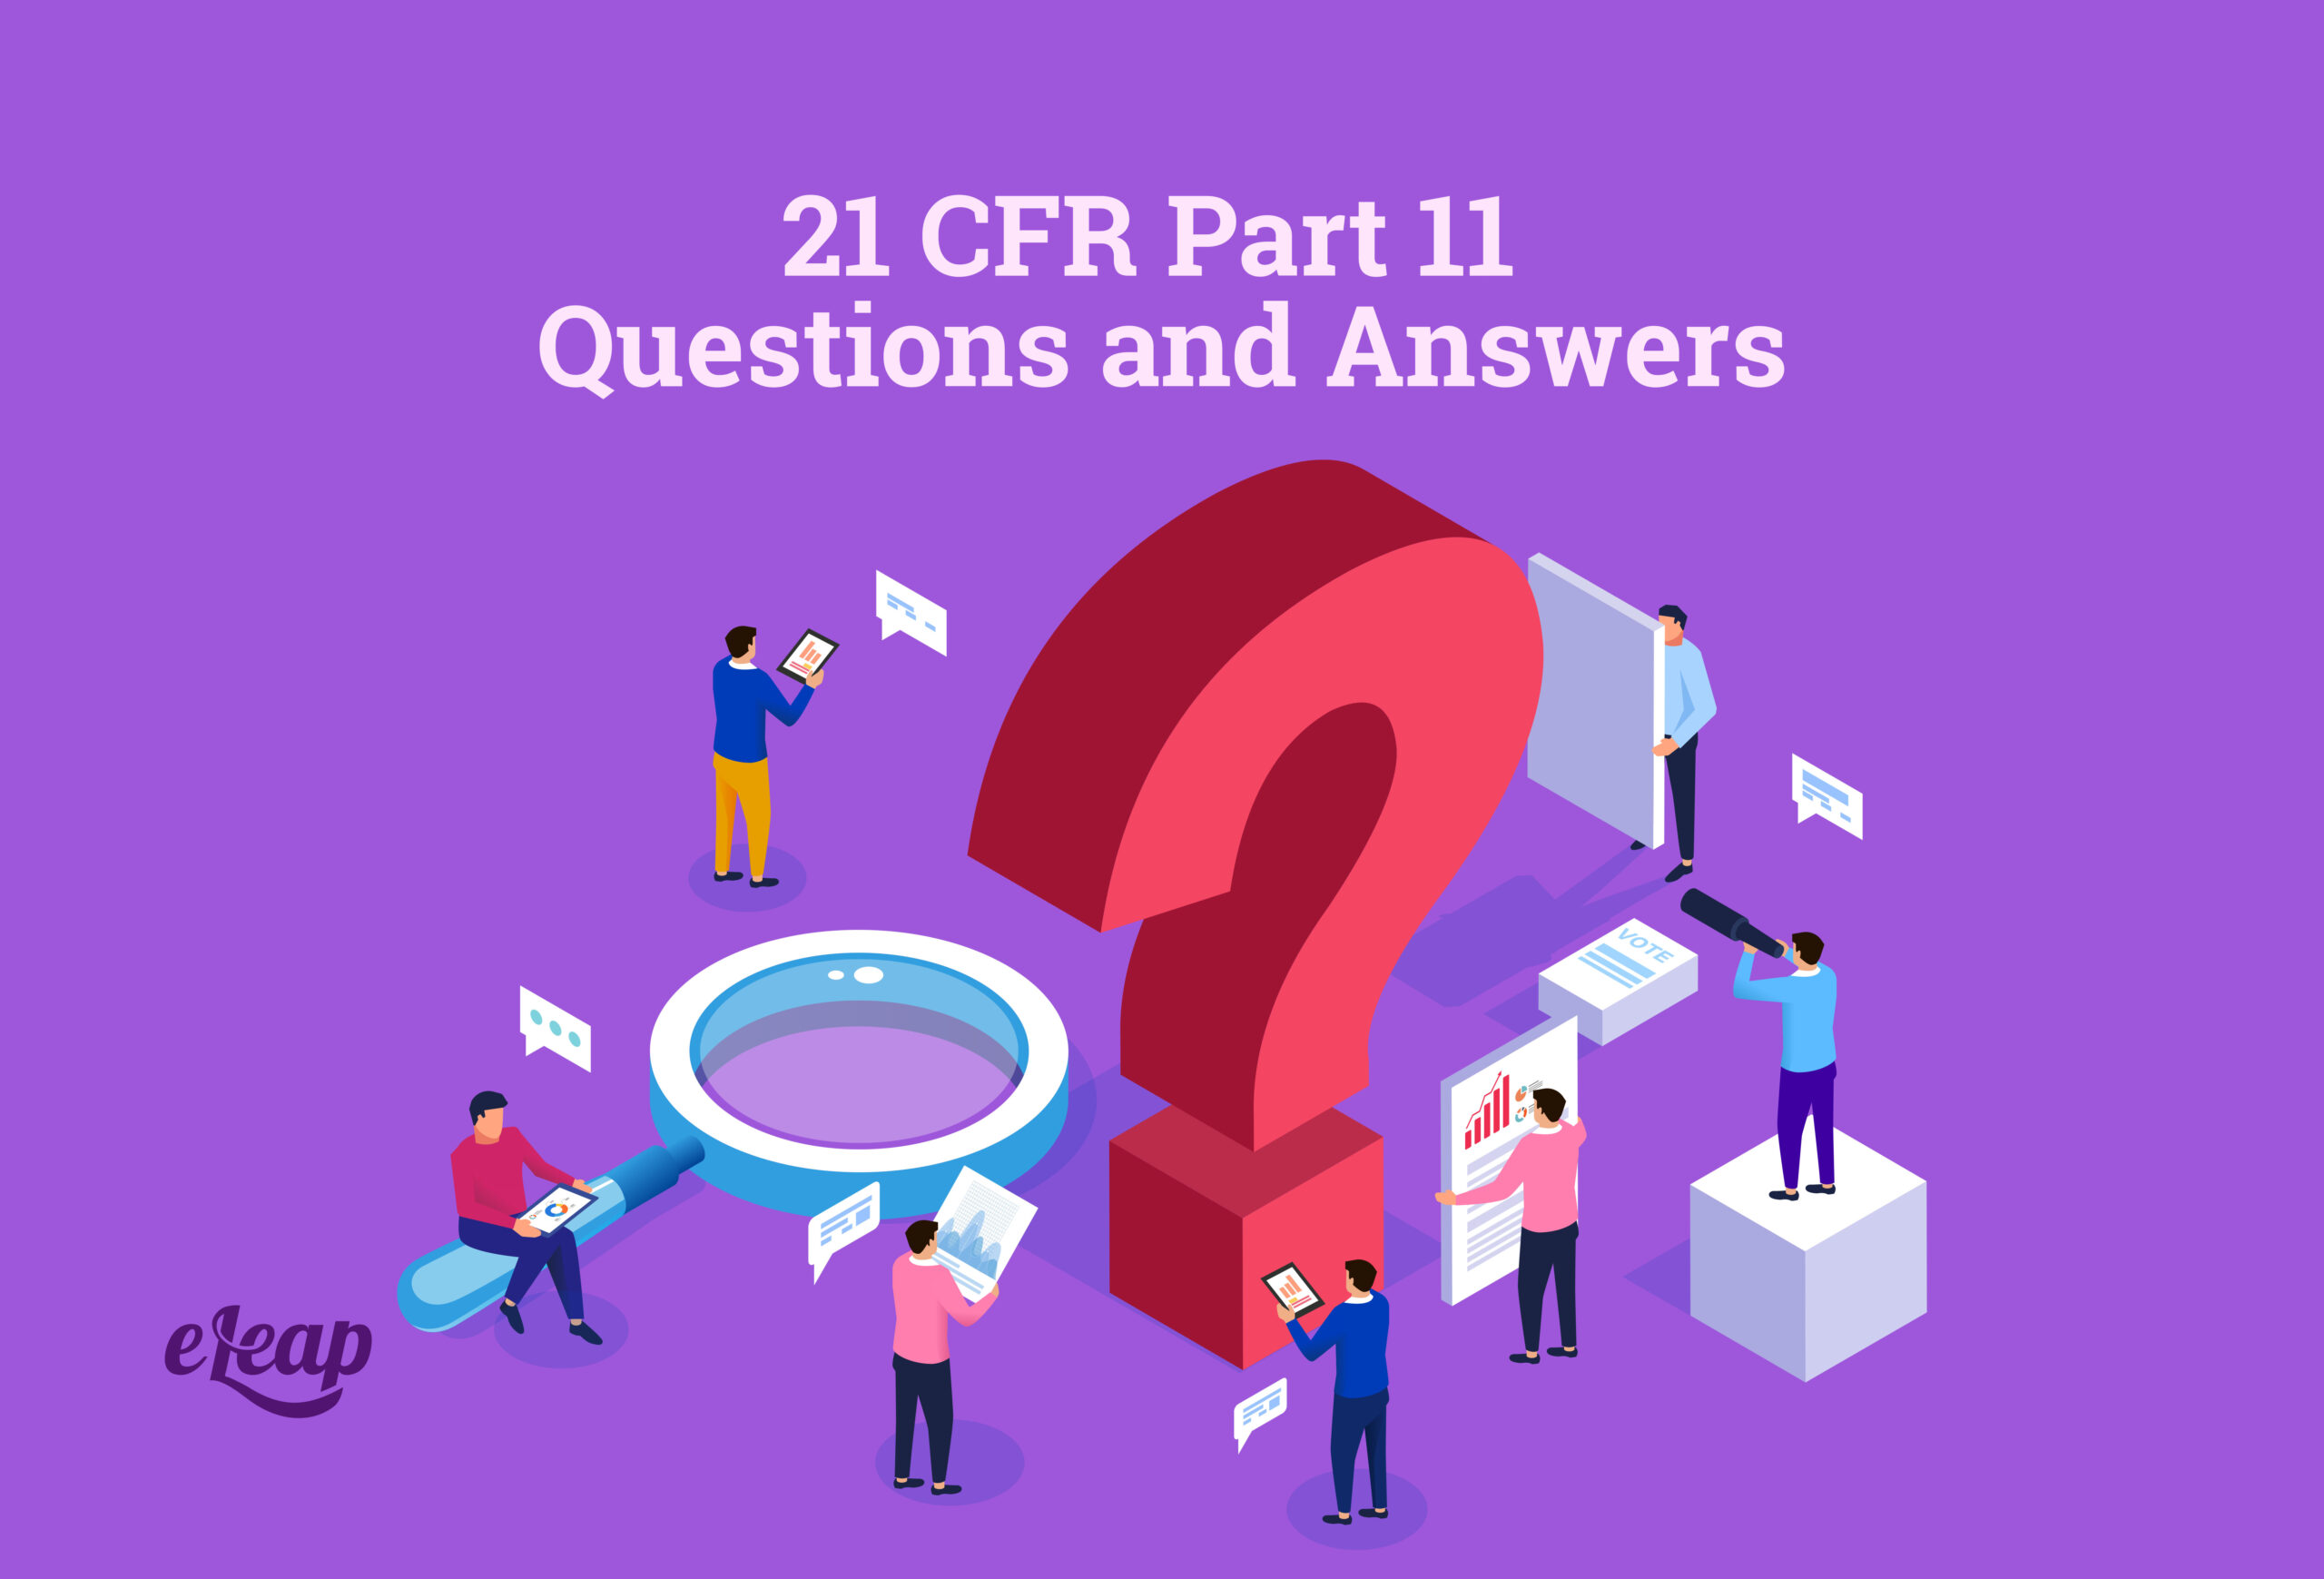 21 CFR Part 11 Questions and Answers